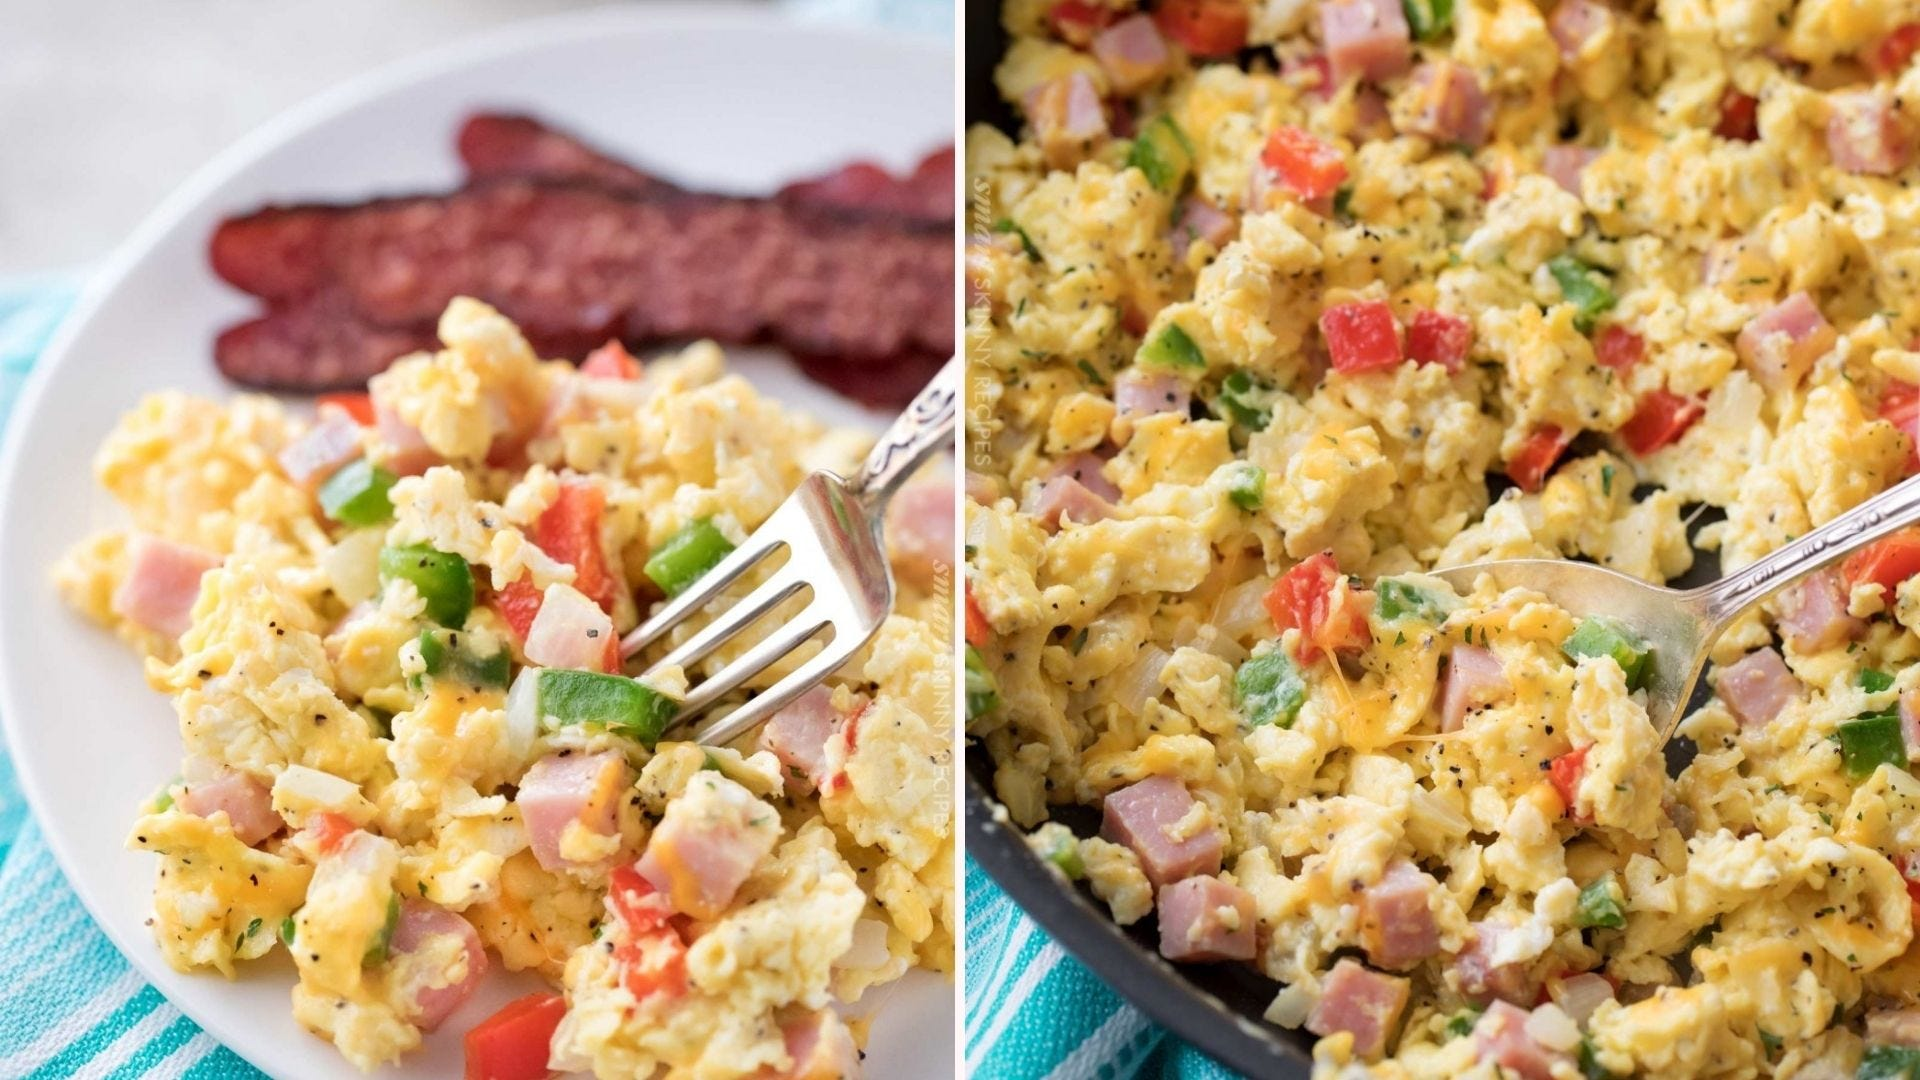 Two images: The left image is of Denver scrambled eggs with a side of bacon and the right image is of a skillet filled with Denver eggs.